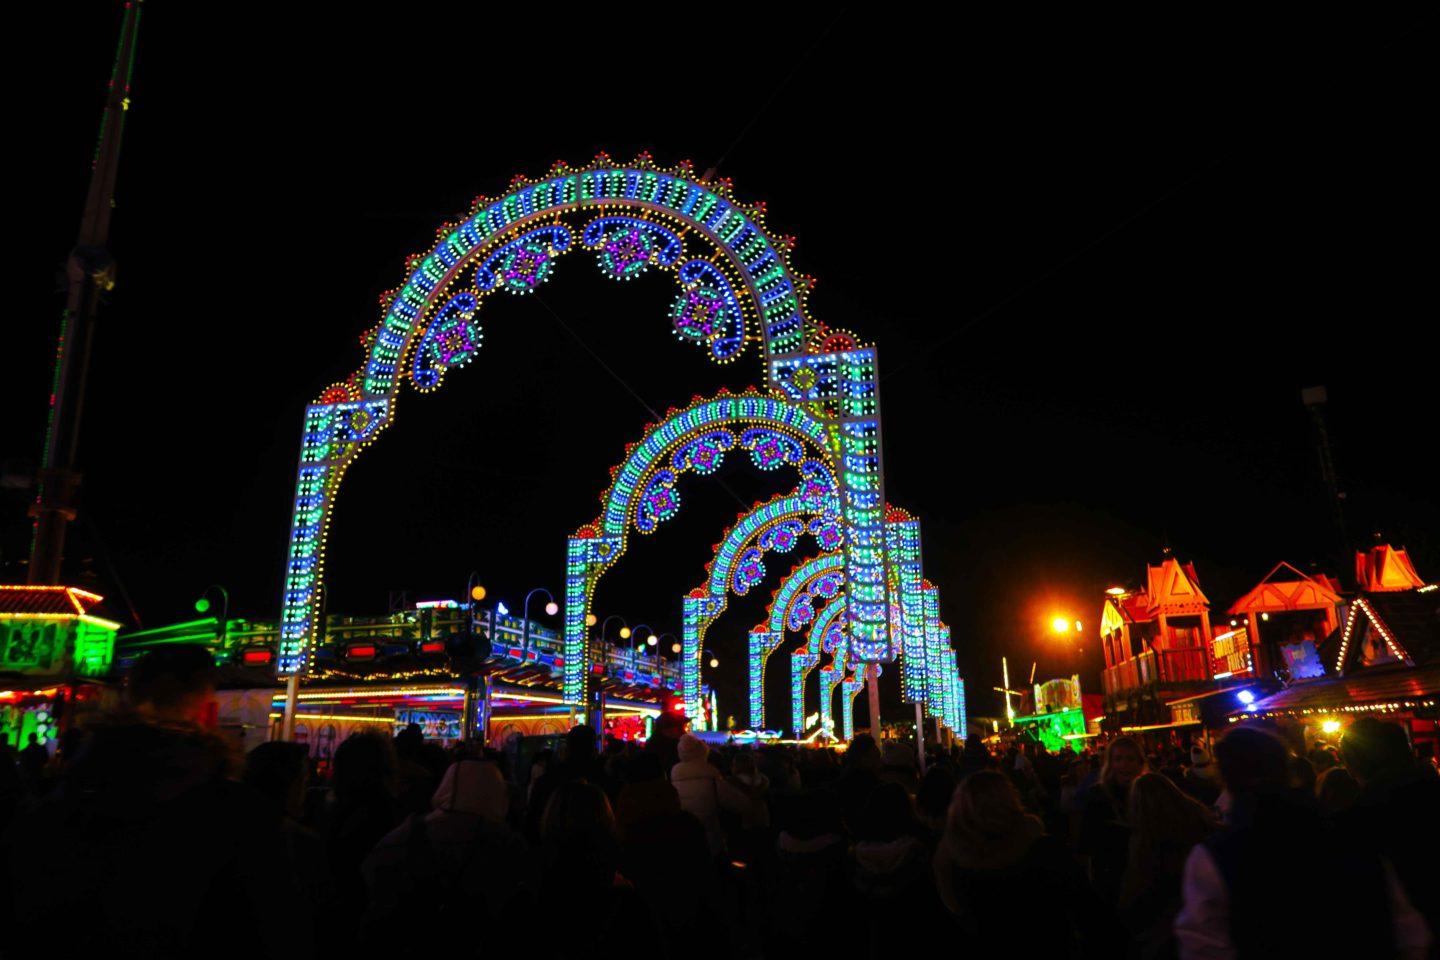 winter wonderland light arches london at christmas